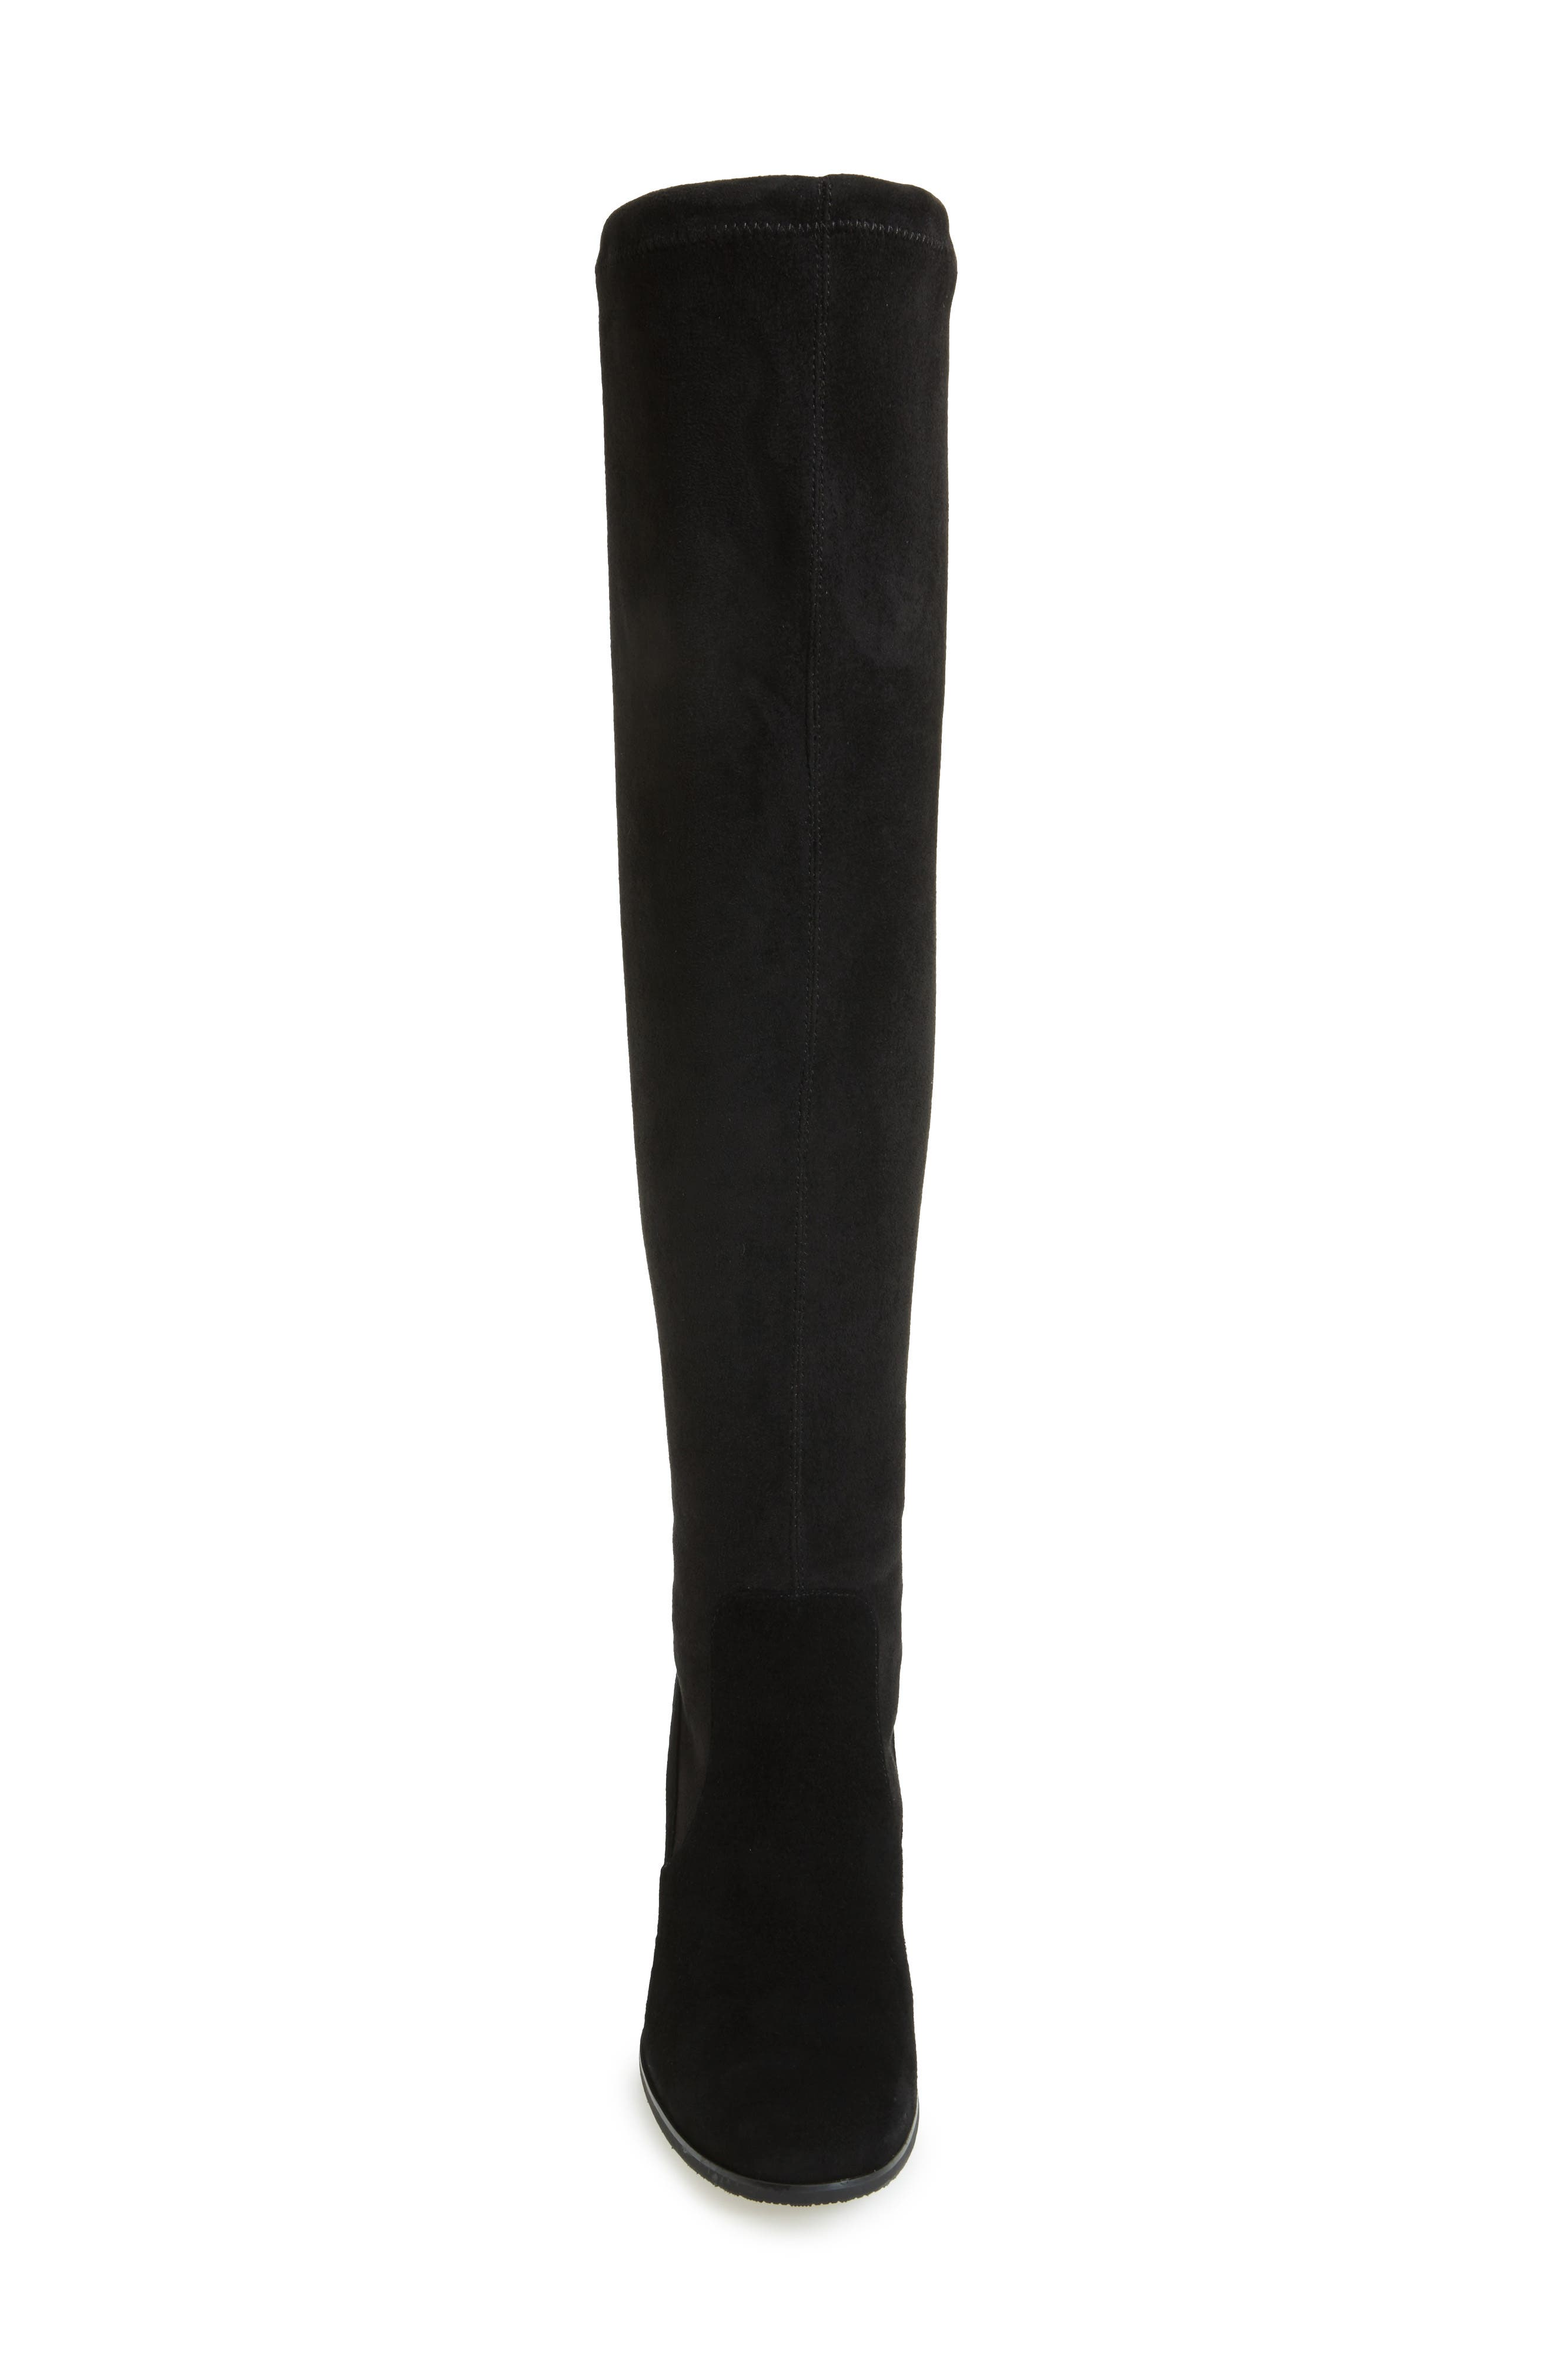 Kali Waterproof Over the Knee Boot,                             Alternate thumbnail 3, color,                             BLACK SUEDE